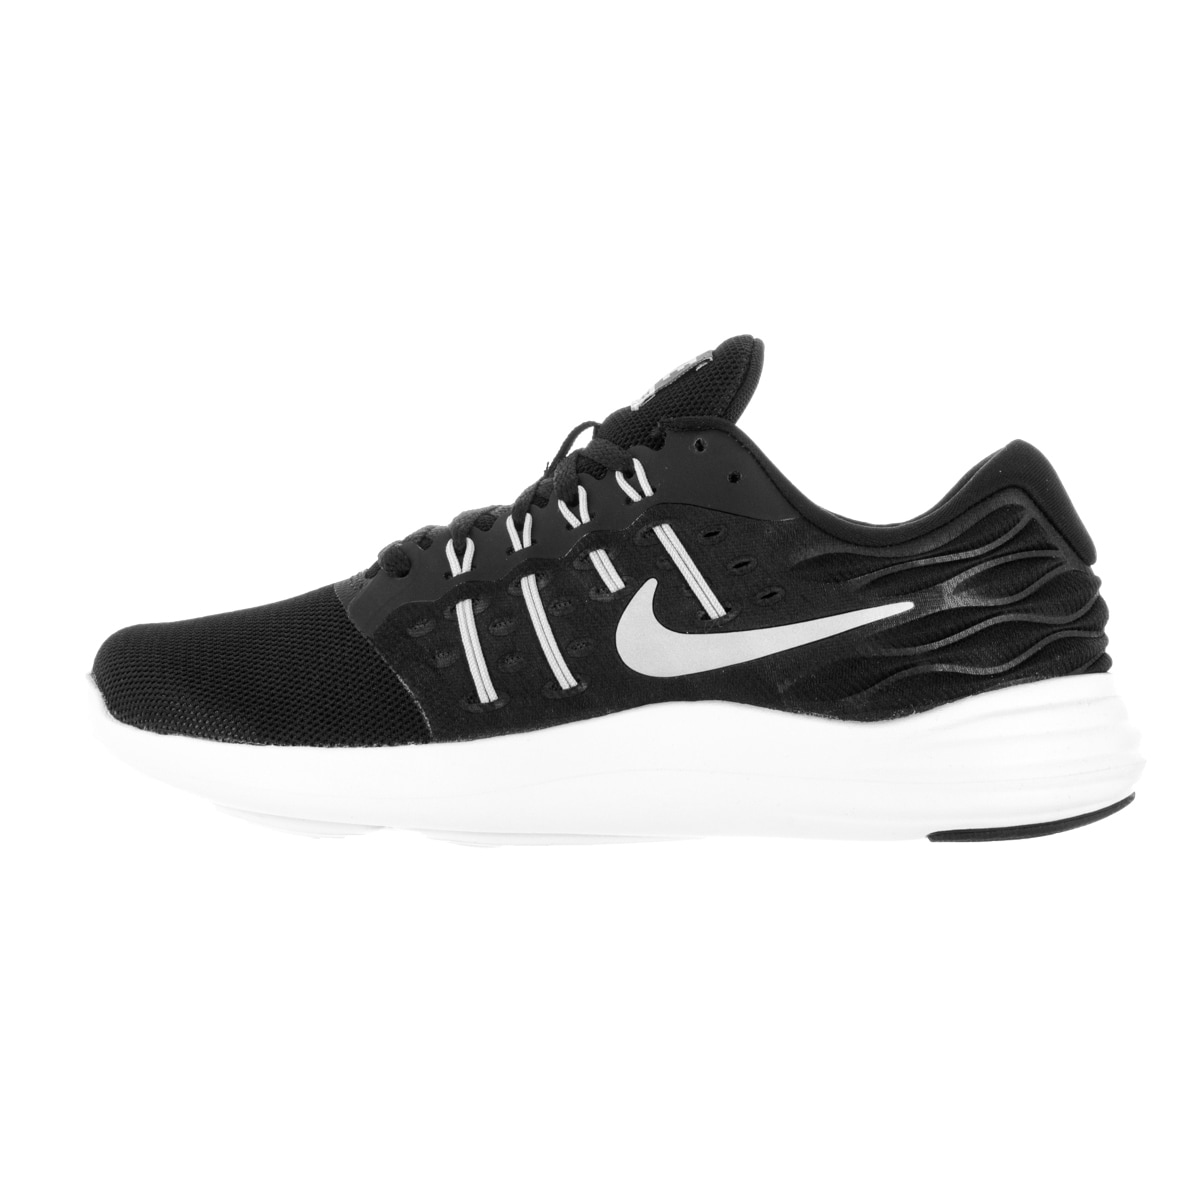 7a72502b5e8a Shop Nike Women s Lunarstelos Black Metallic Silver Anthracite White  Running Shoe - Free Shipping Today - Overstock.com - 13343905